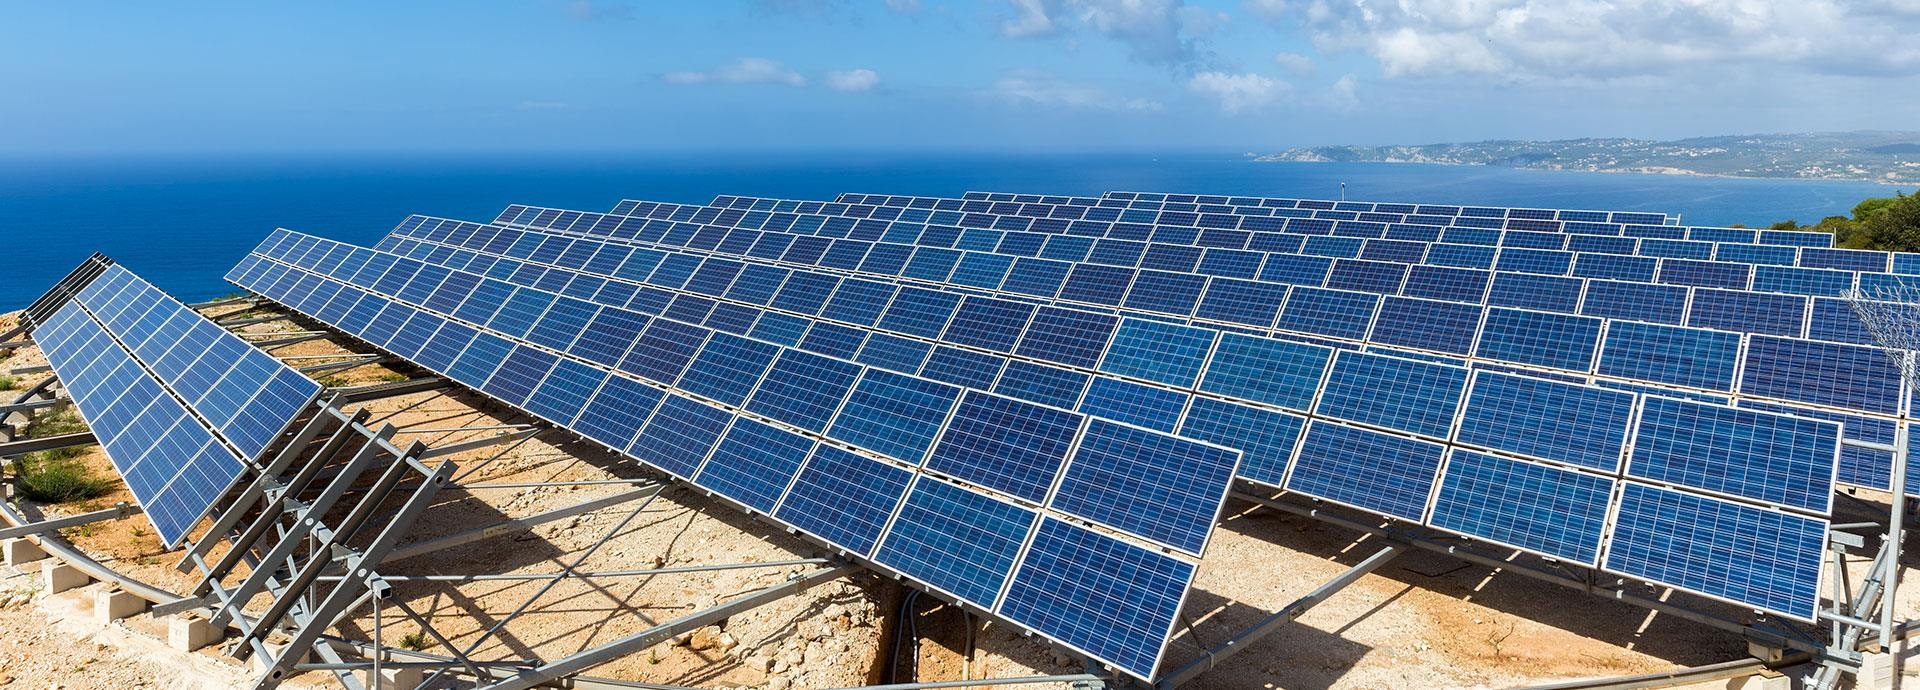 The optimal path for greater use of renewable energy in Greece